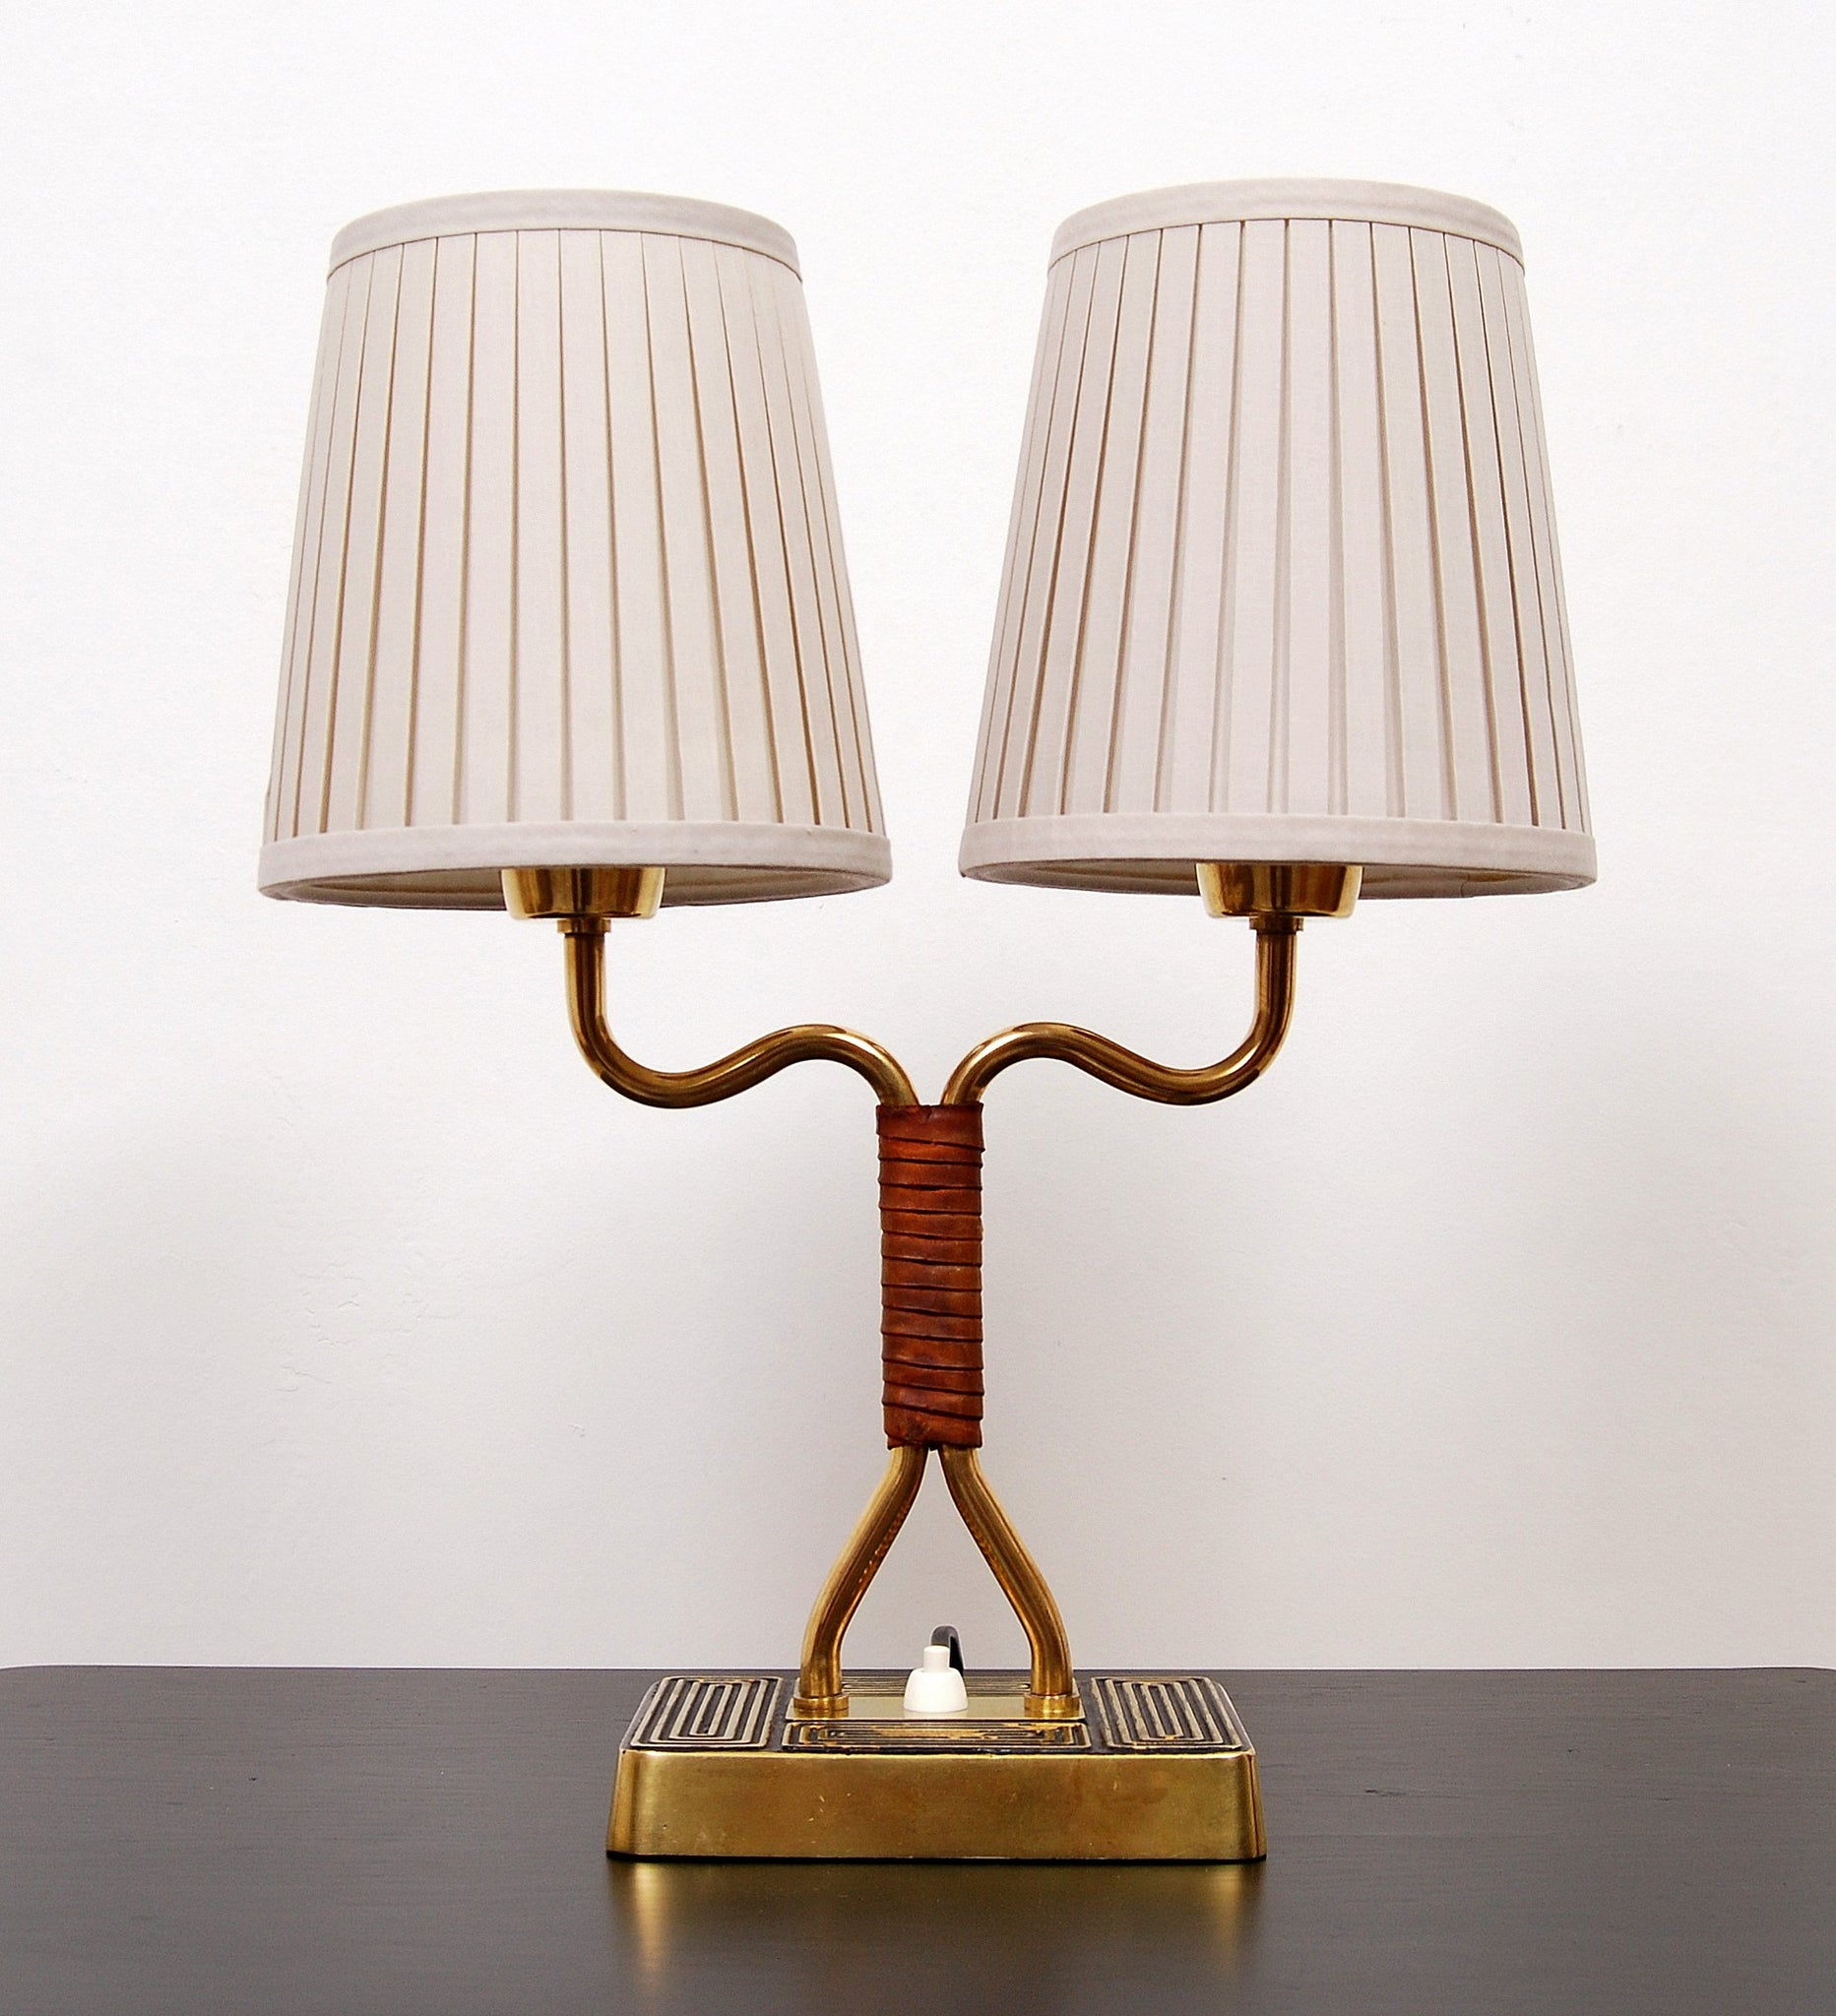 Asea Brass & Leather Table Lamp 1950s